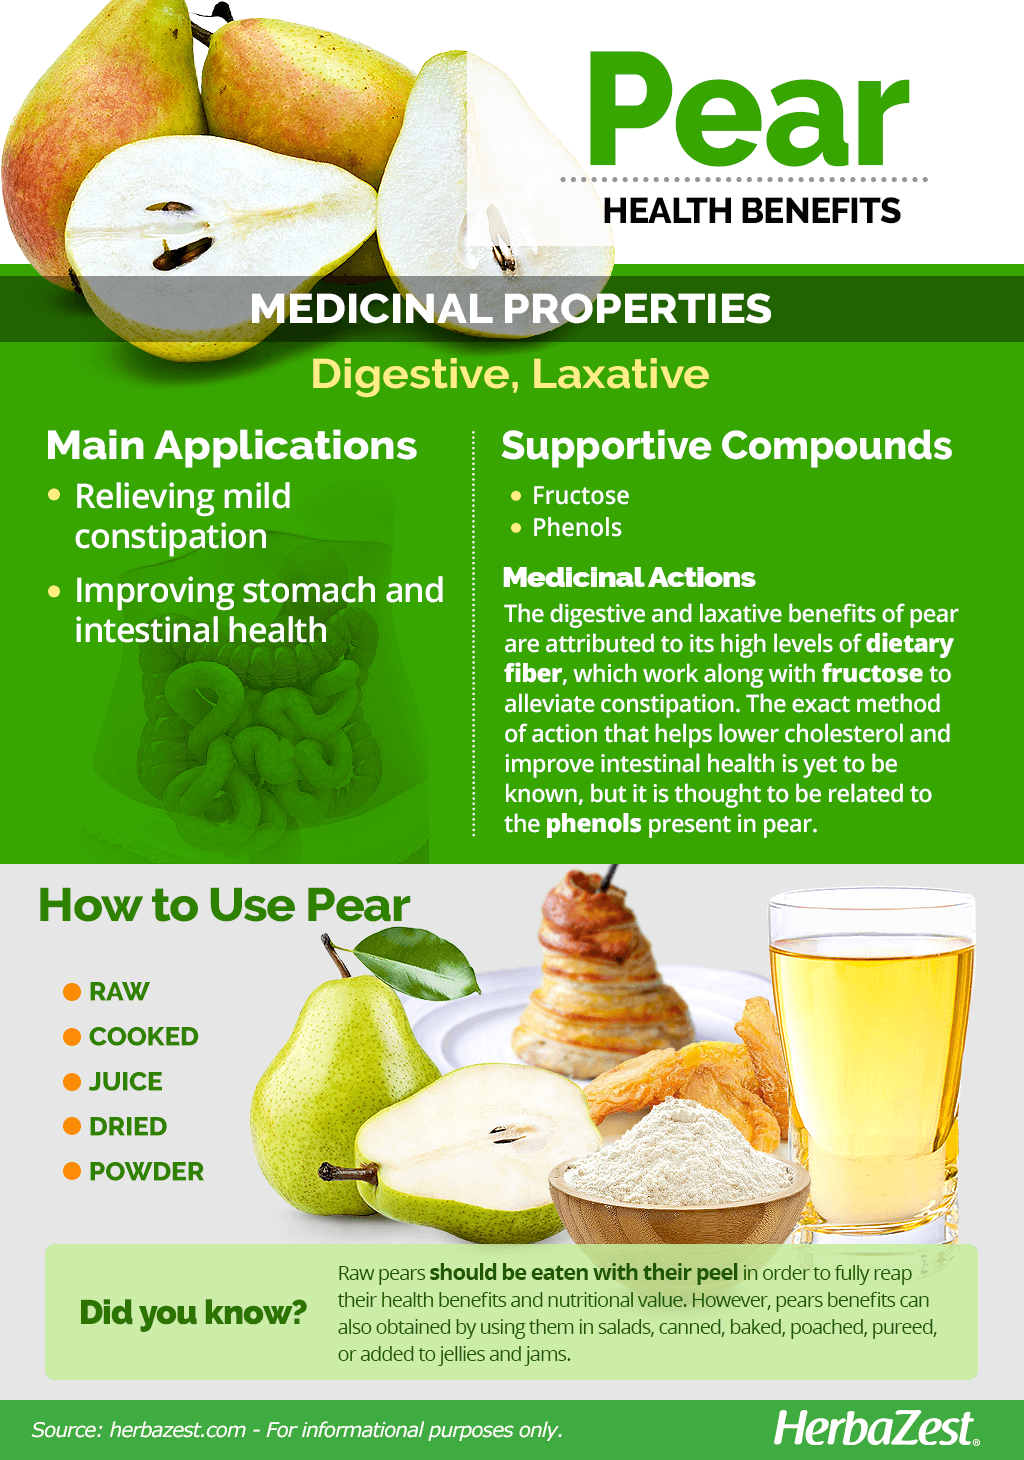 All About Pear